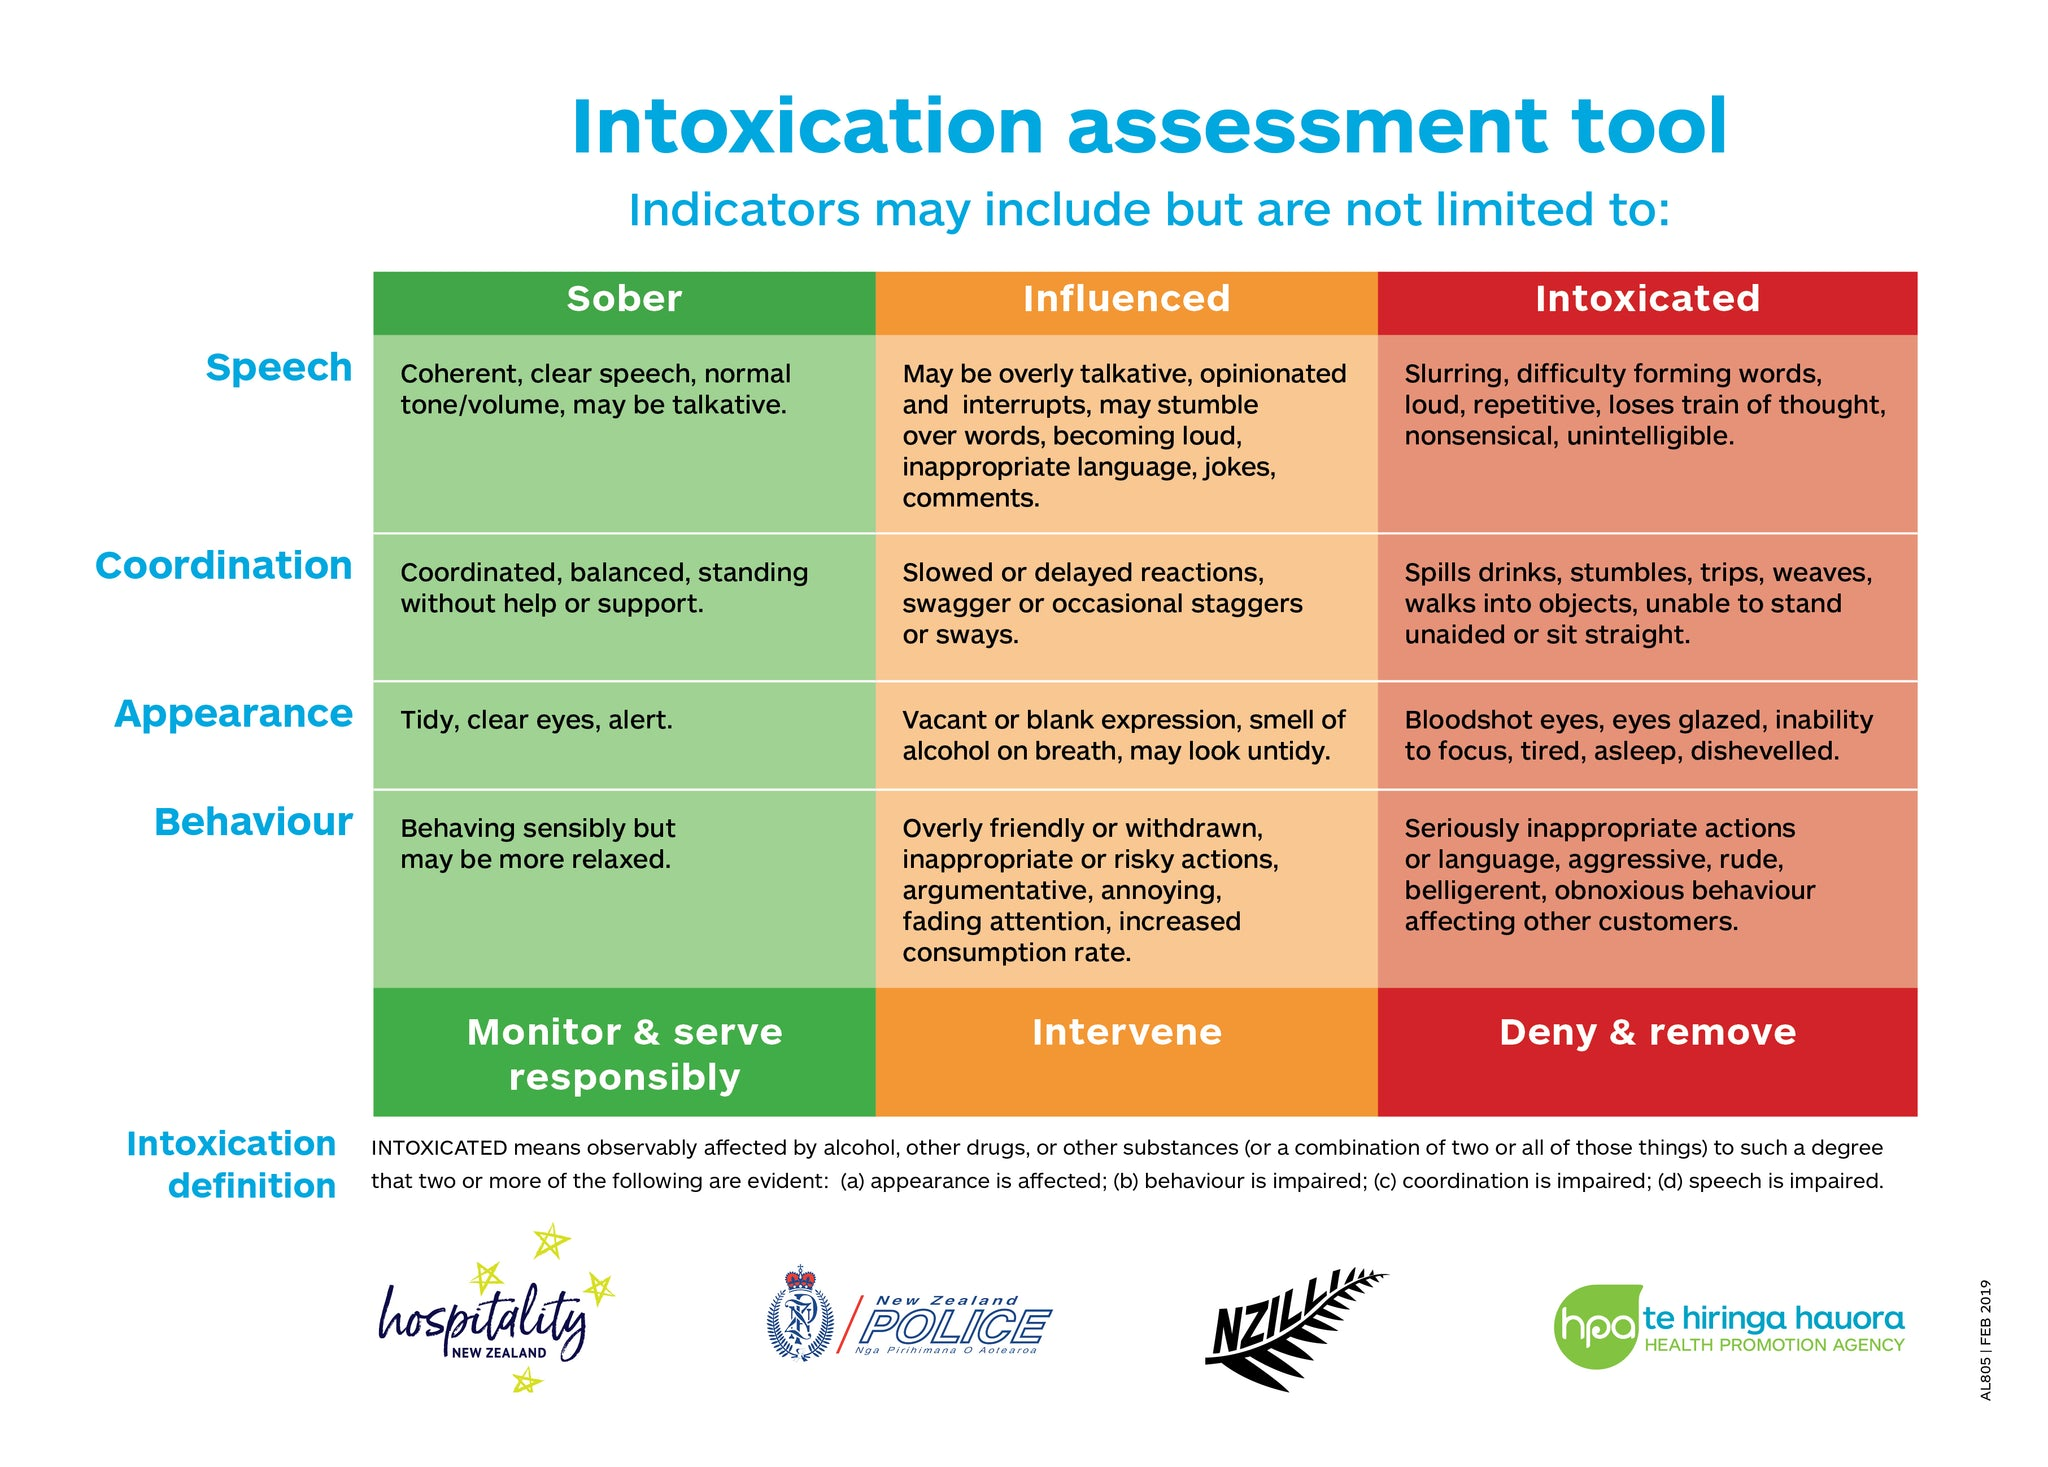 Intoxication Assessment Tool Poster